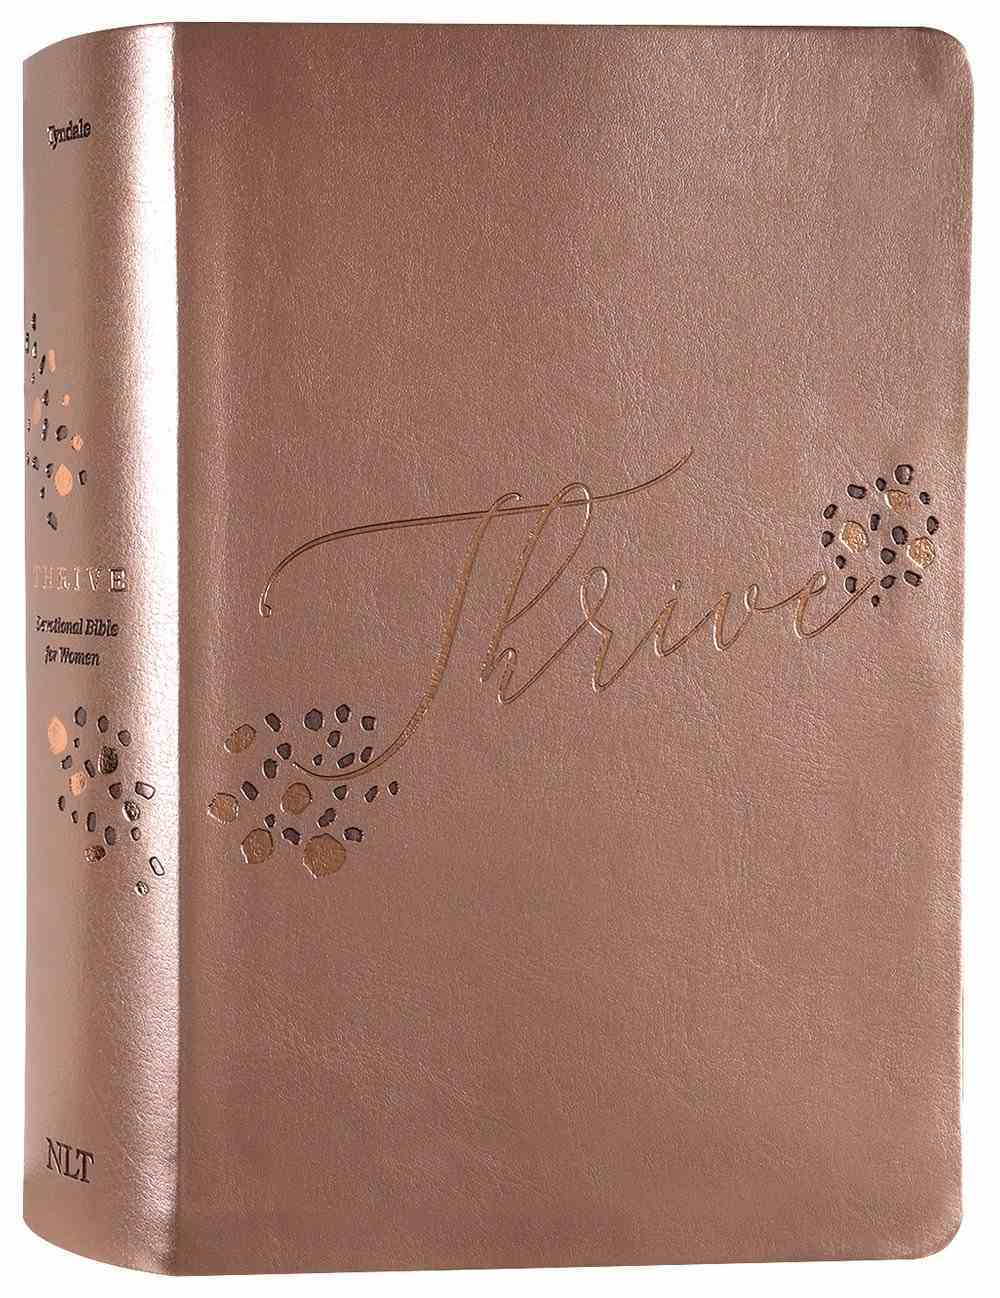 NLT Thrive Devotional Bible For Women Rose Metallic Imitation Leather